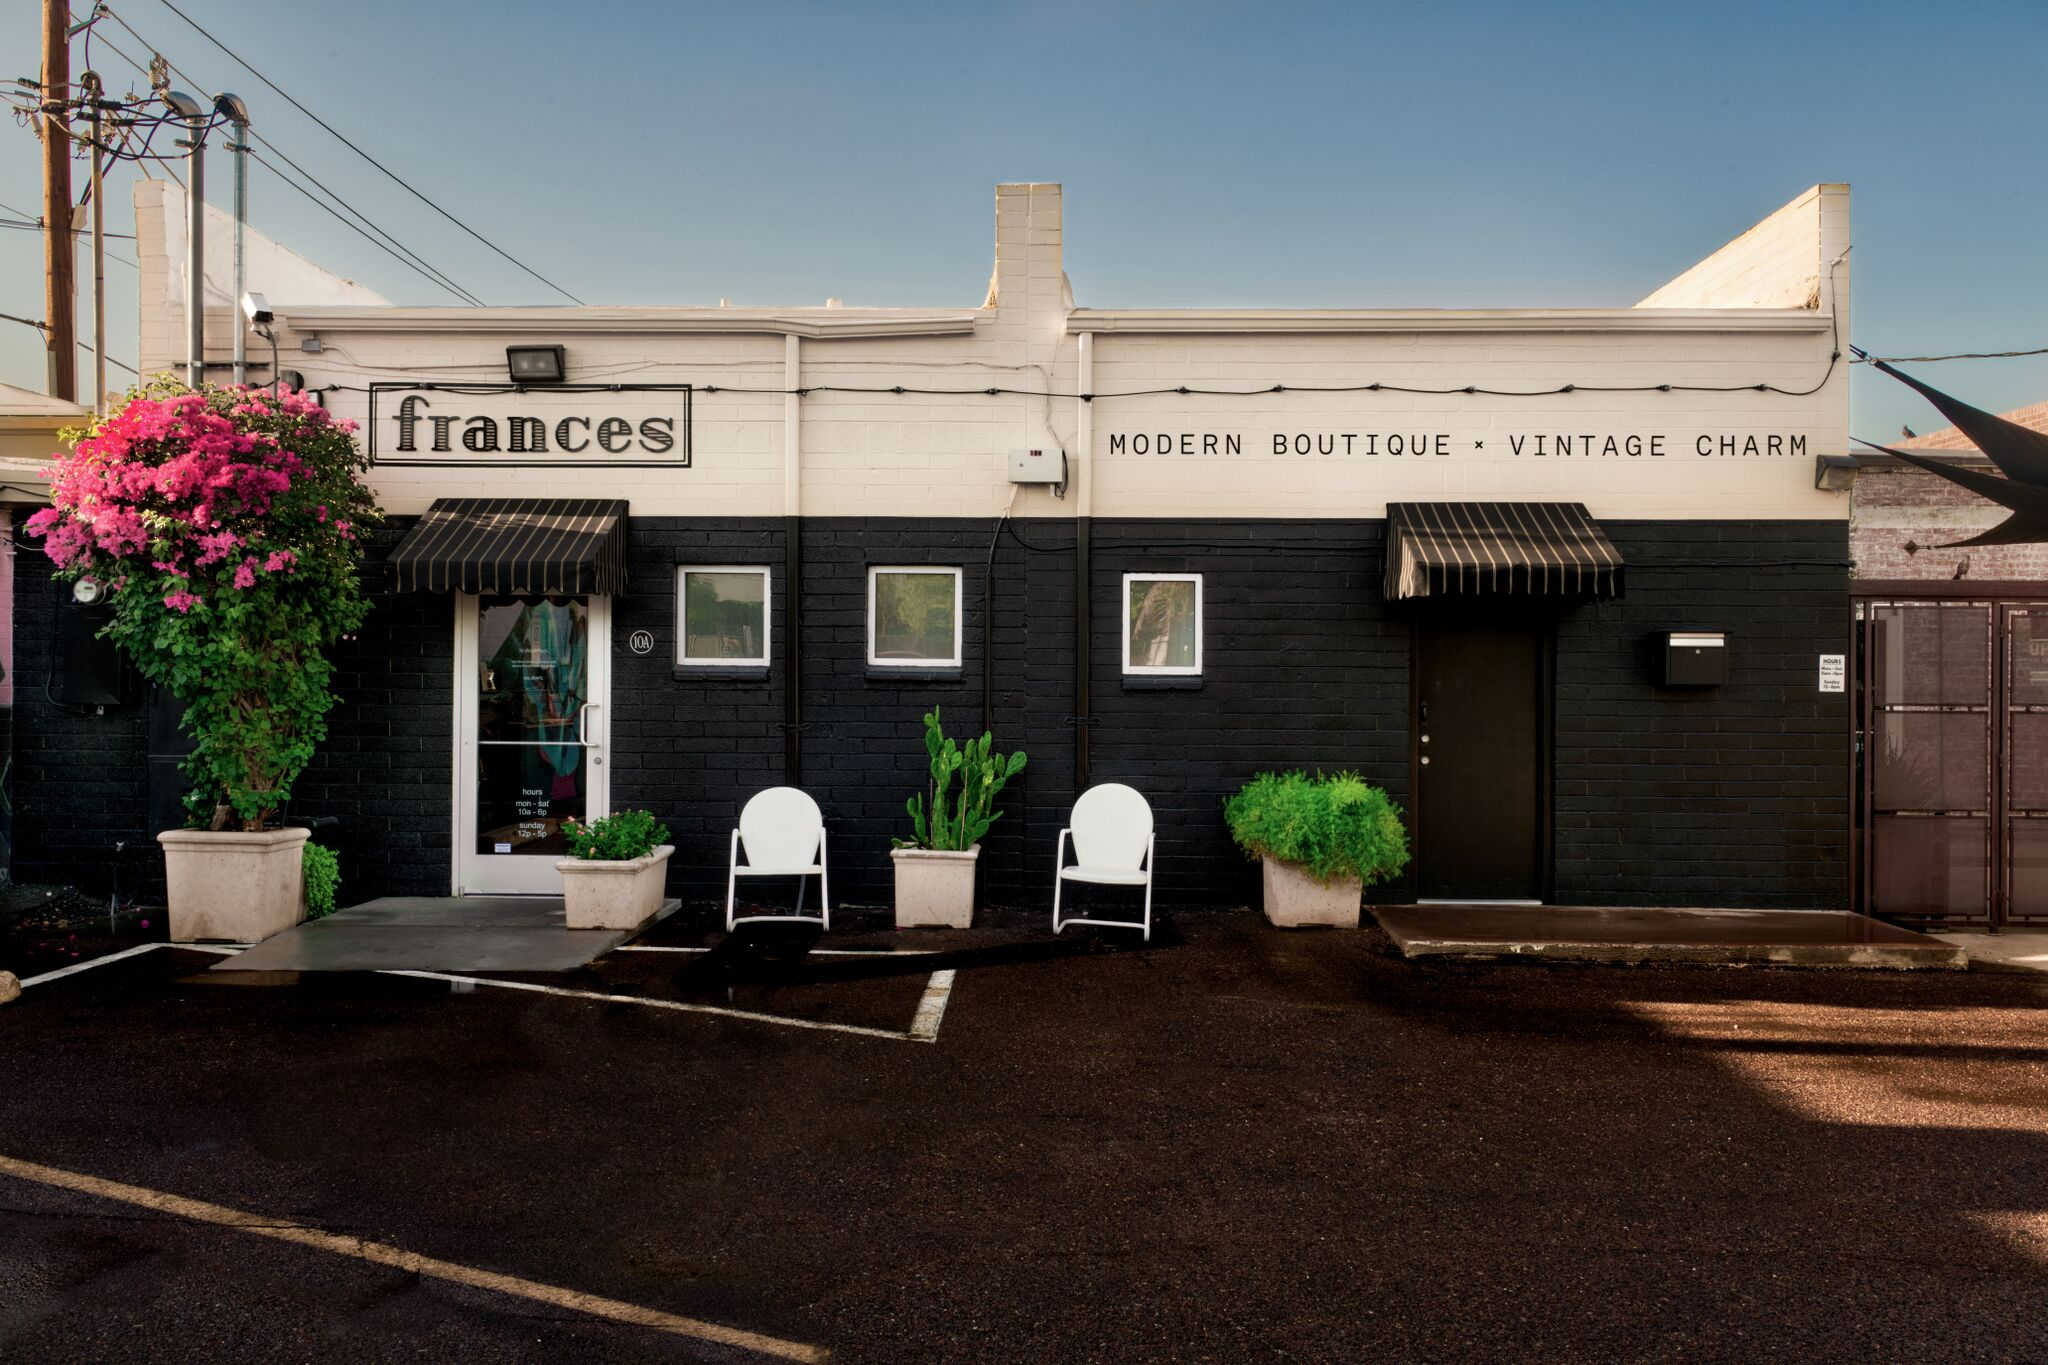 Phoenix, Arizona gift shop and souvenir destination, Frances boutique